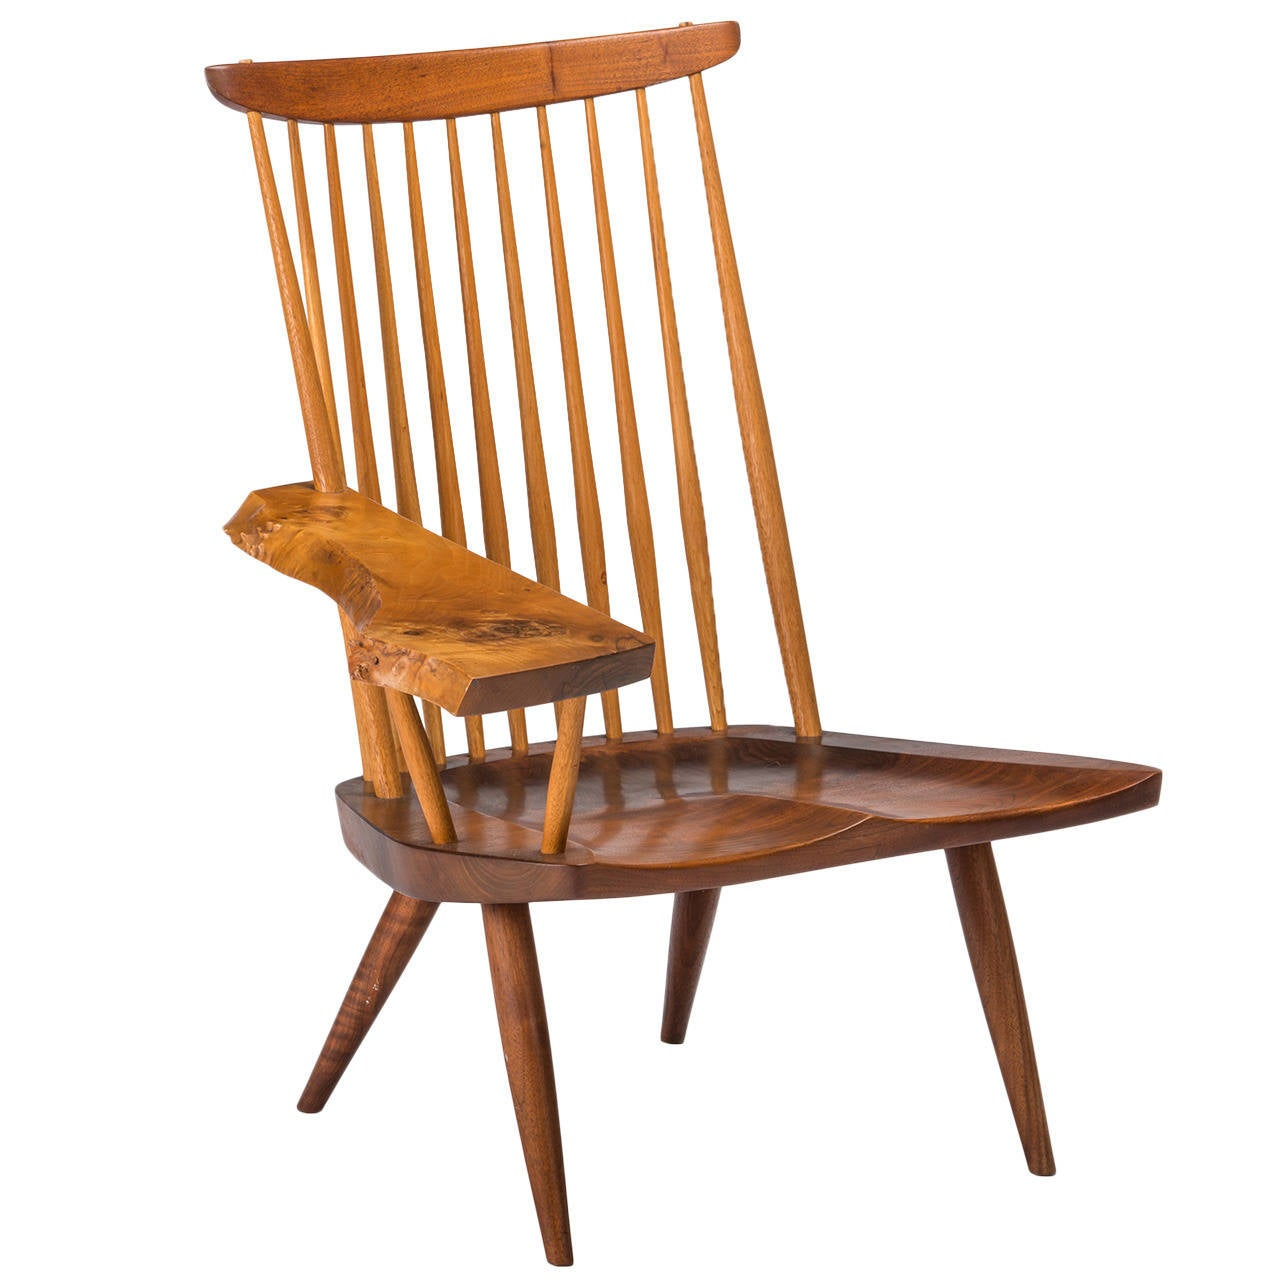 Exceptional George Nakashima Single Arm Lounge Chair At